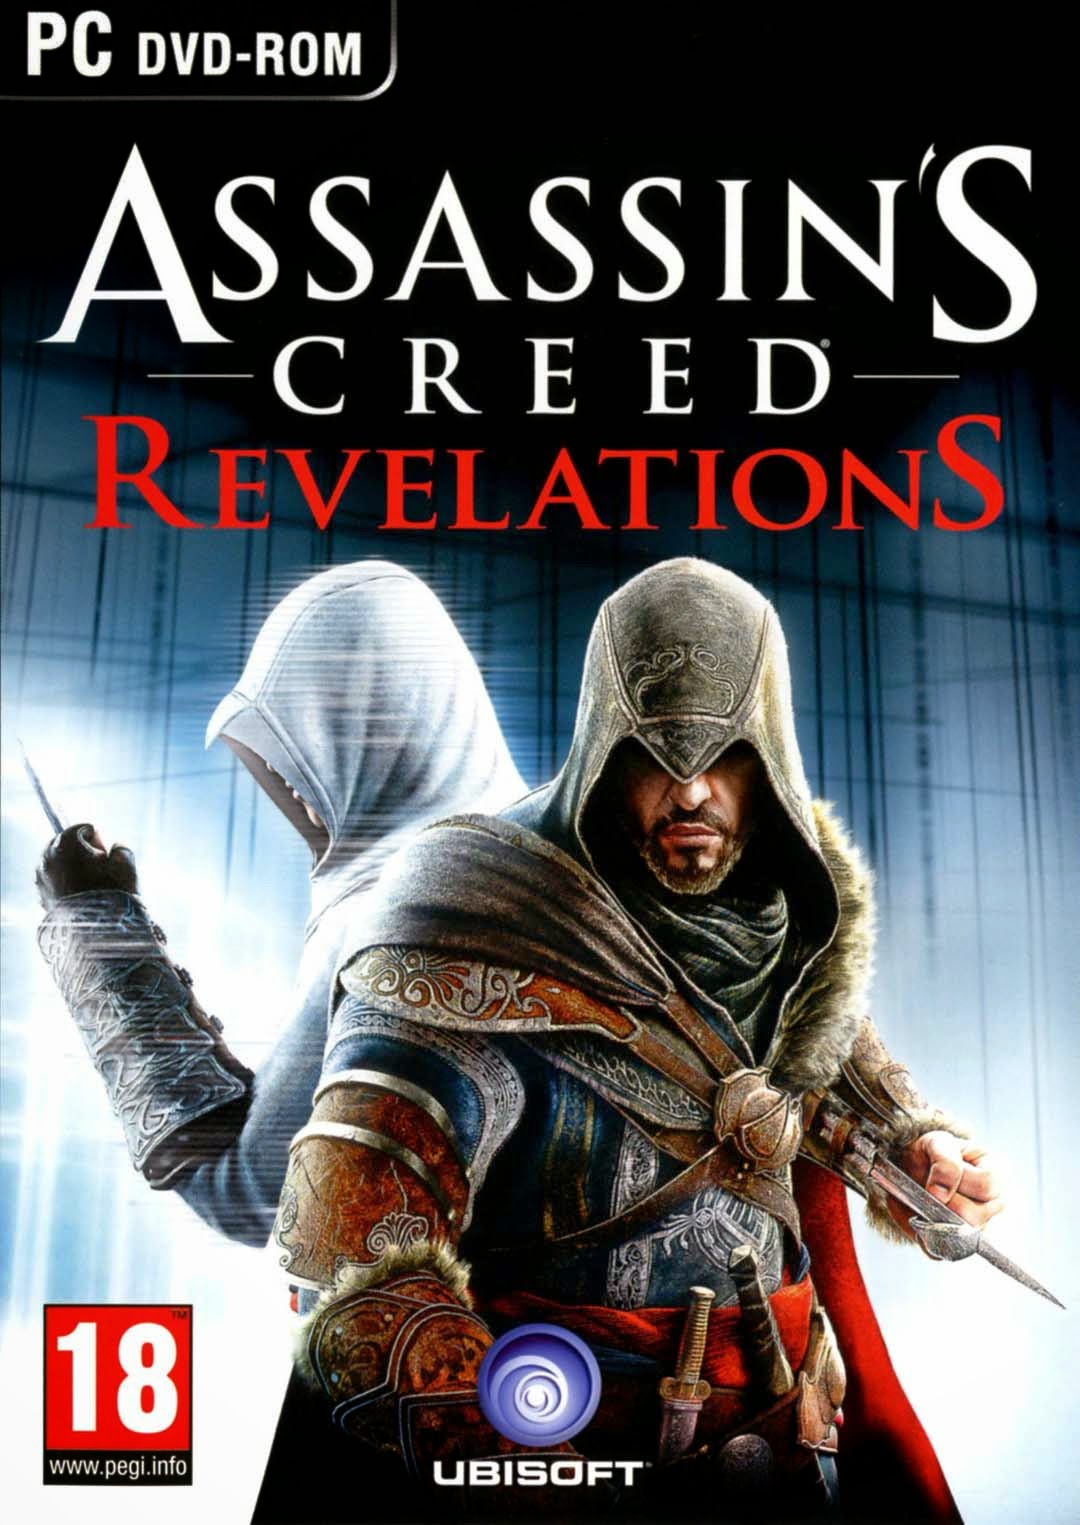 Assassin's Creed: Revelations Free Download - Game Maza